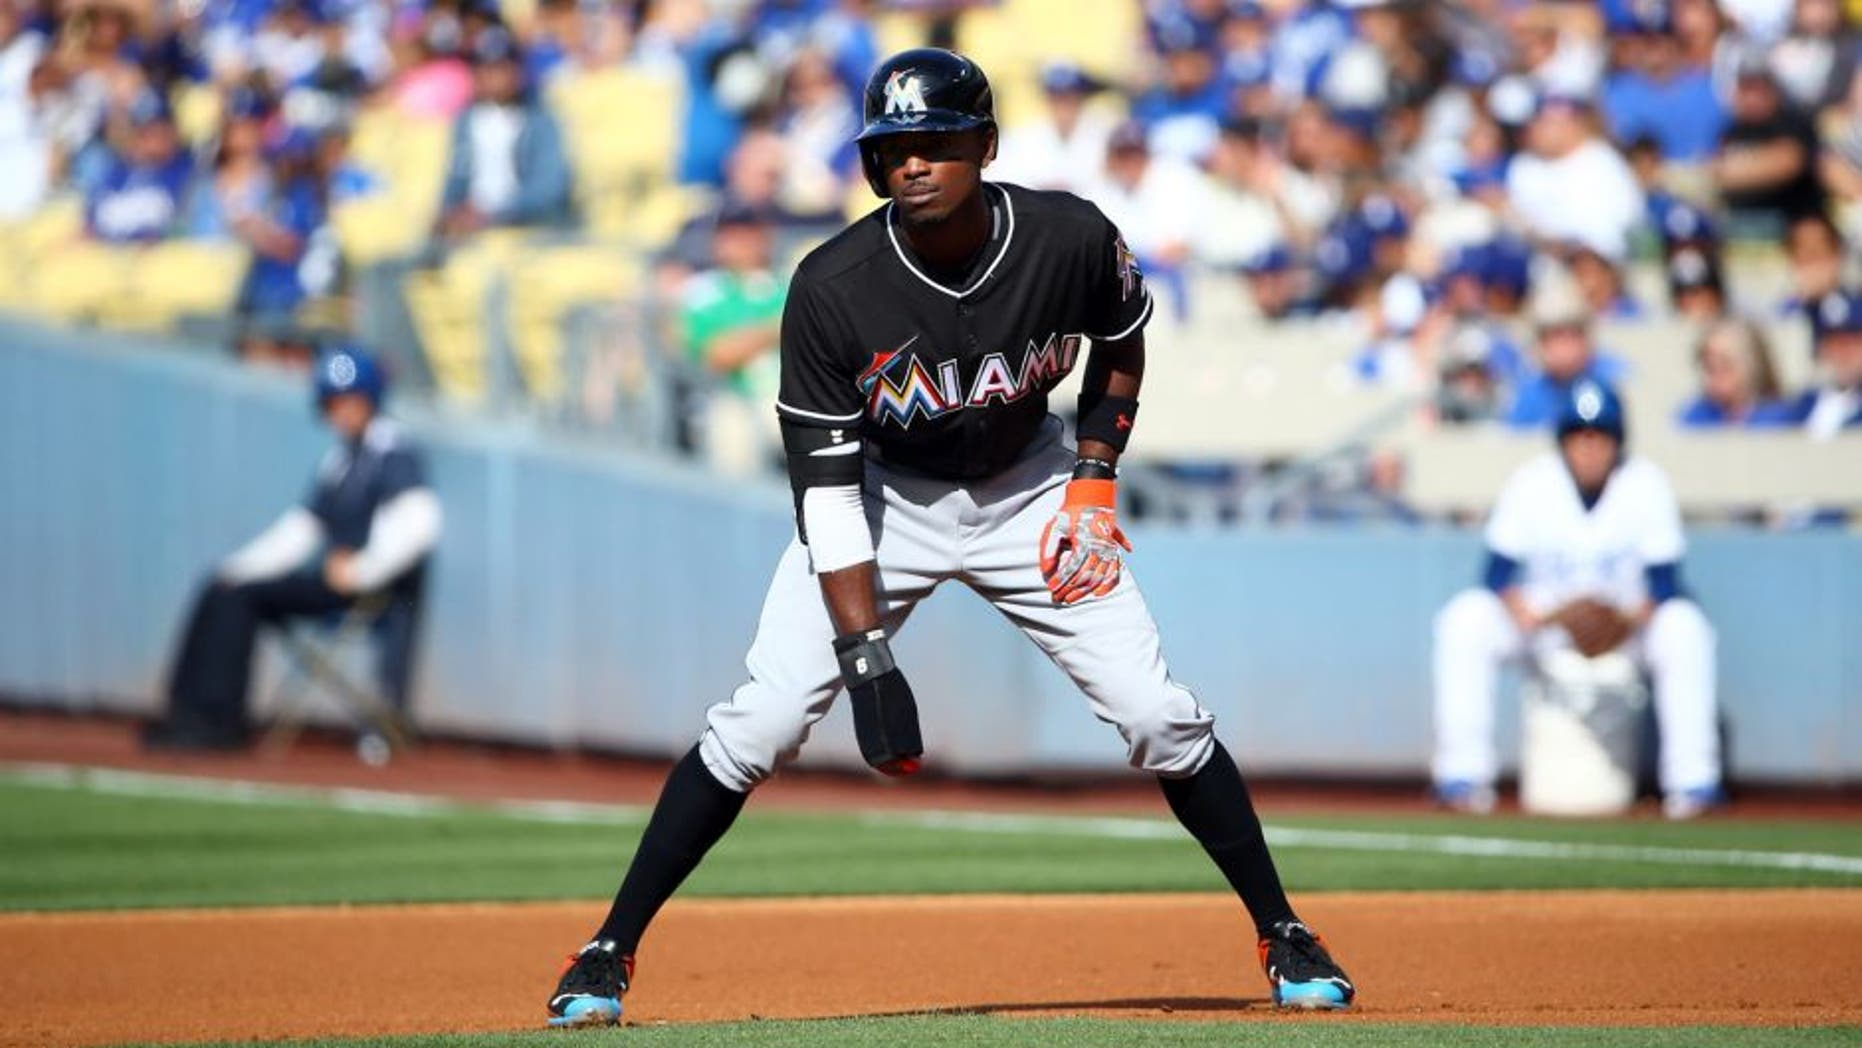 LOS ANGELES, CA - MAY 13: Dee Gordon #9 of the Miami Marlins leads off at first in the first inning during the MLB game against the Los Angeles Dodgers at Dodger Stadium on May 13, 2015 in Los Angeles, California. The Marlins defeated the Dodgers 5-4. (Photo by Victor Decolongon/Getty Images)